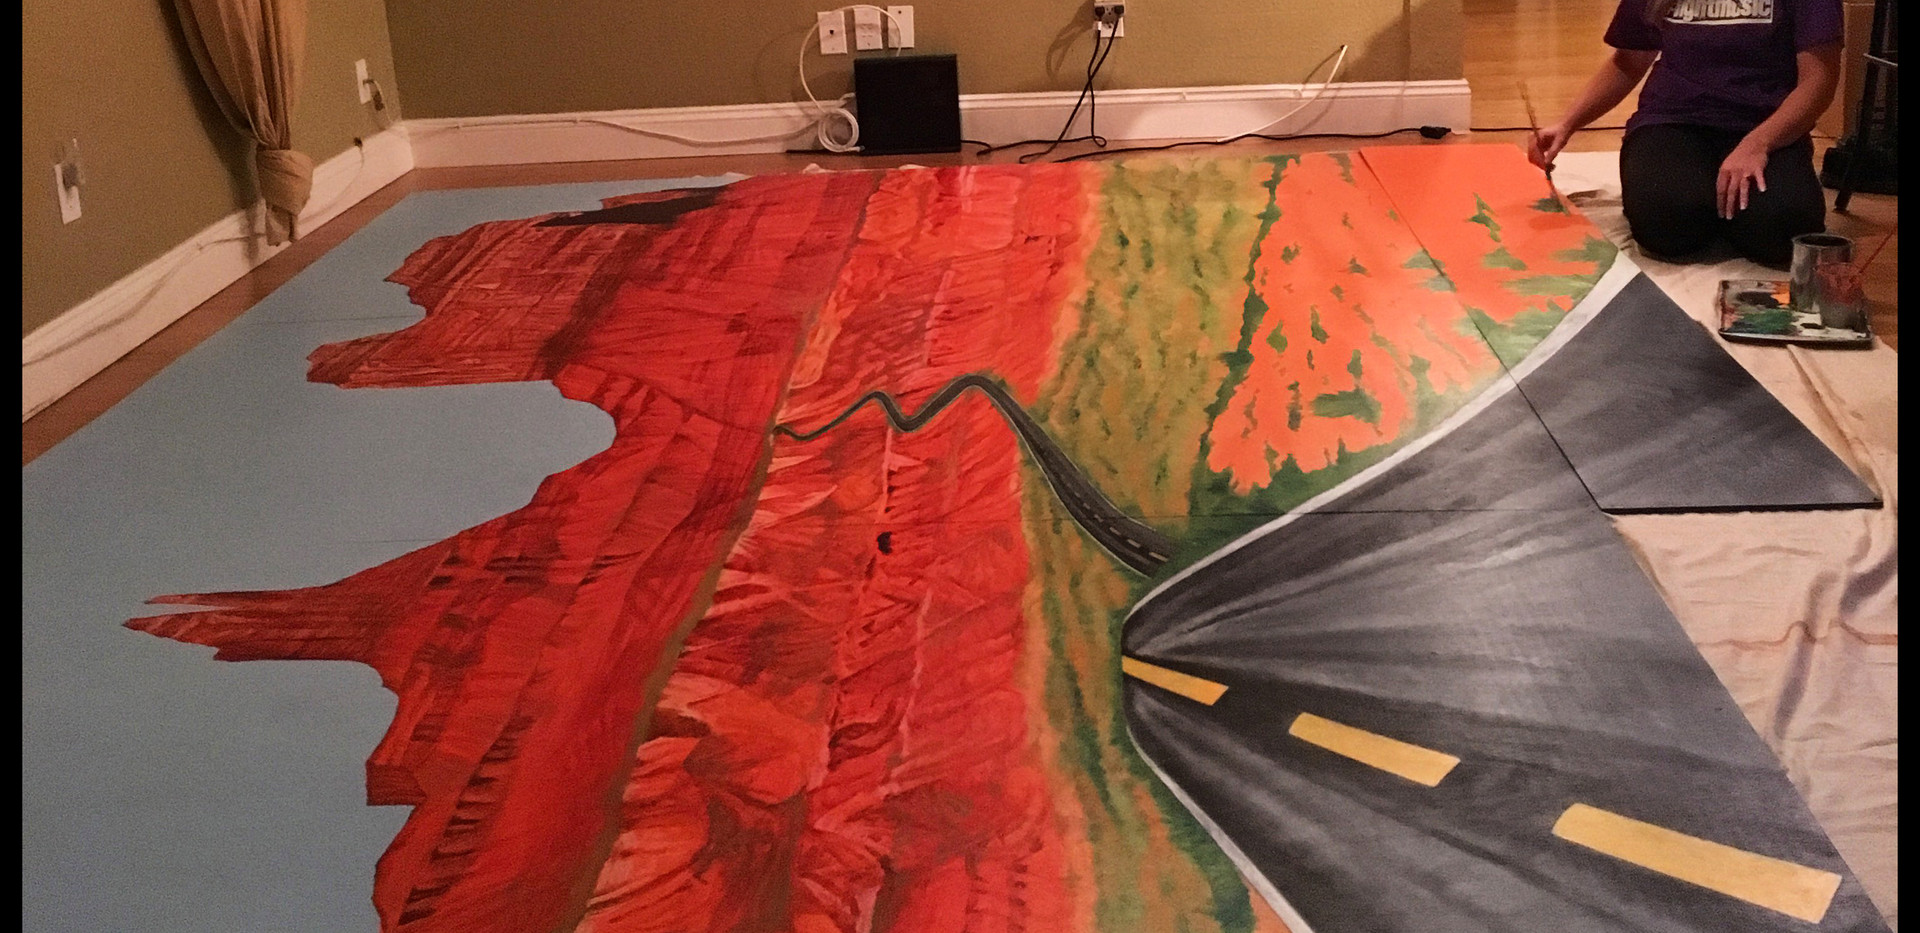 mural-monument-paint-scenery-valley-ariz